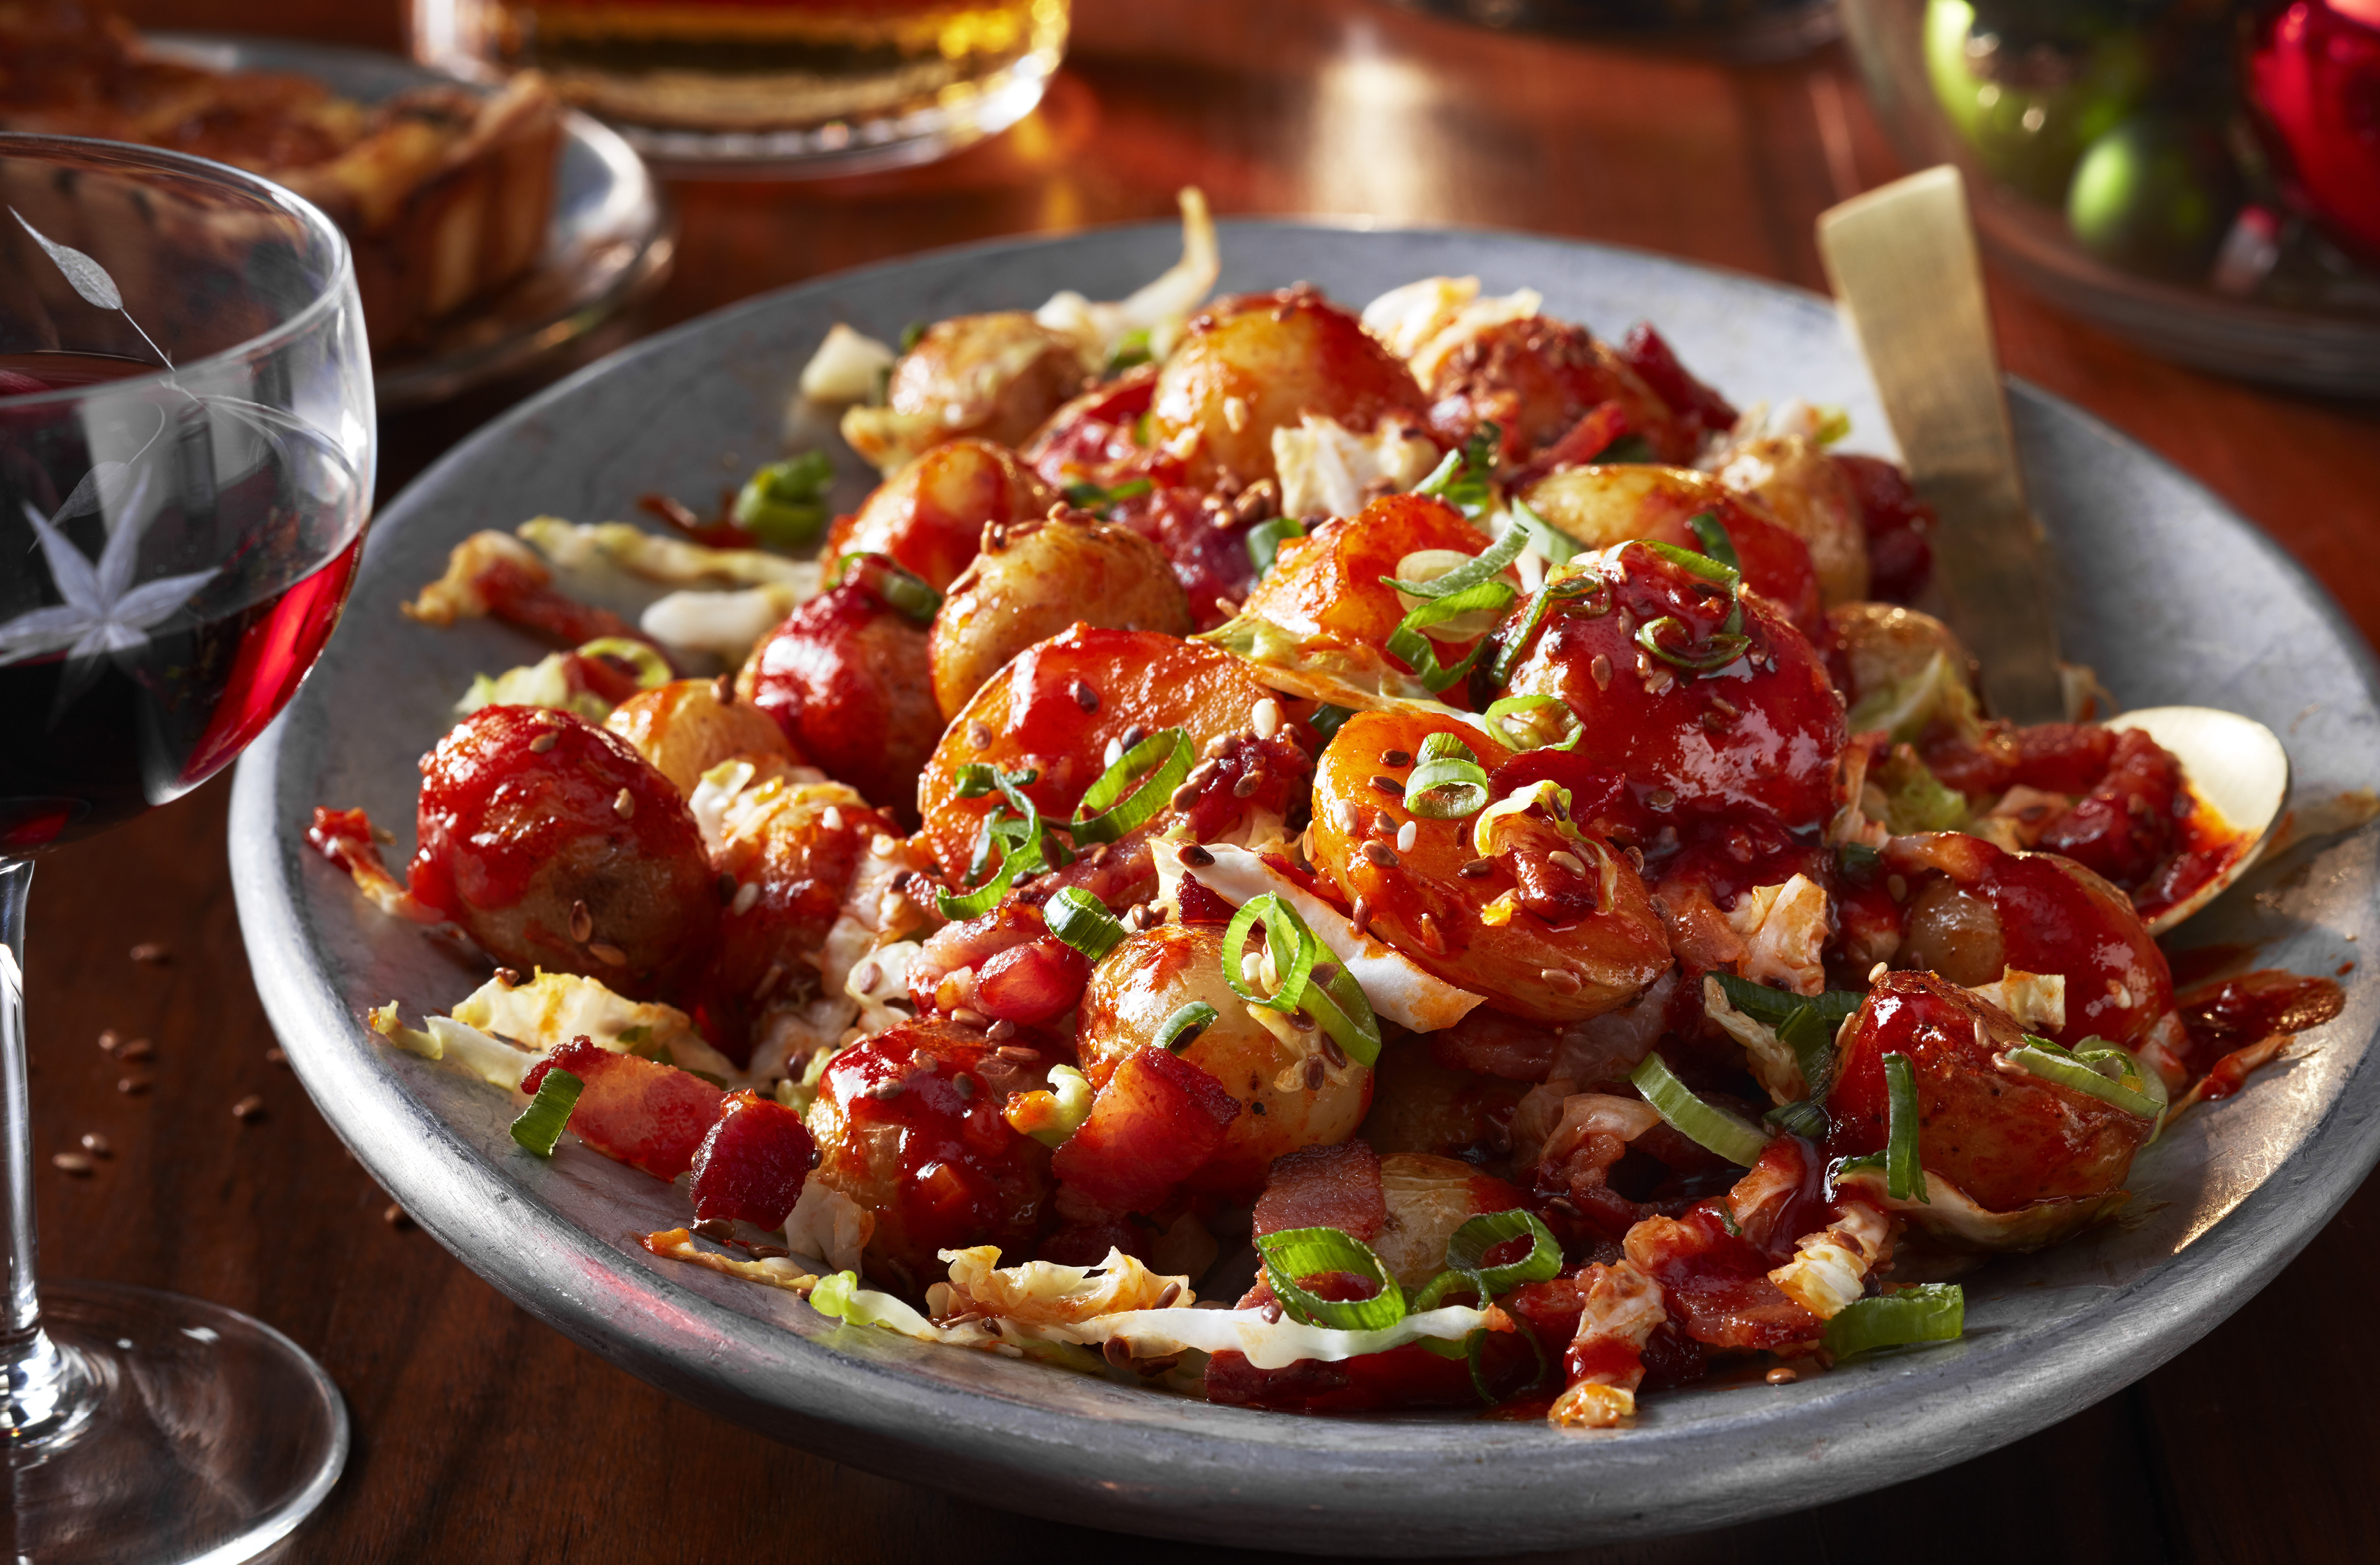 A platter of korean fried potatoes topped with bacon and scallions